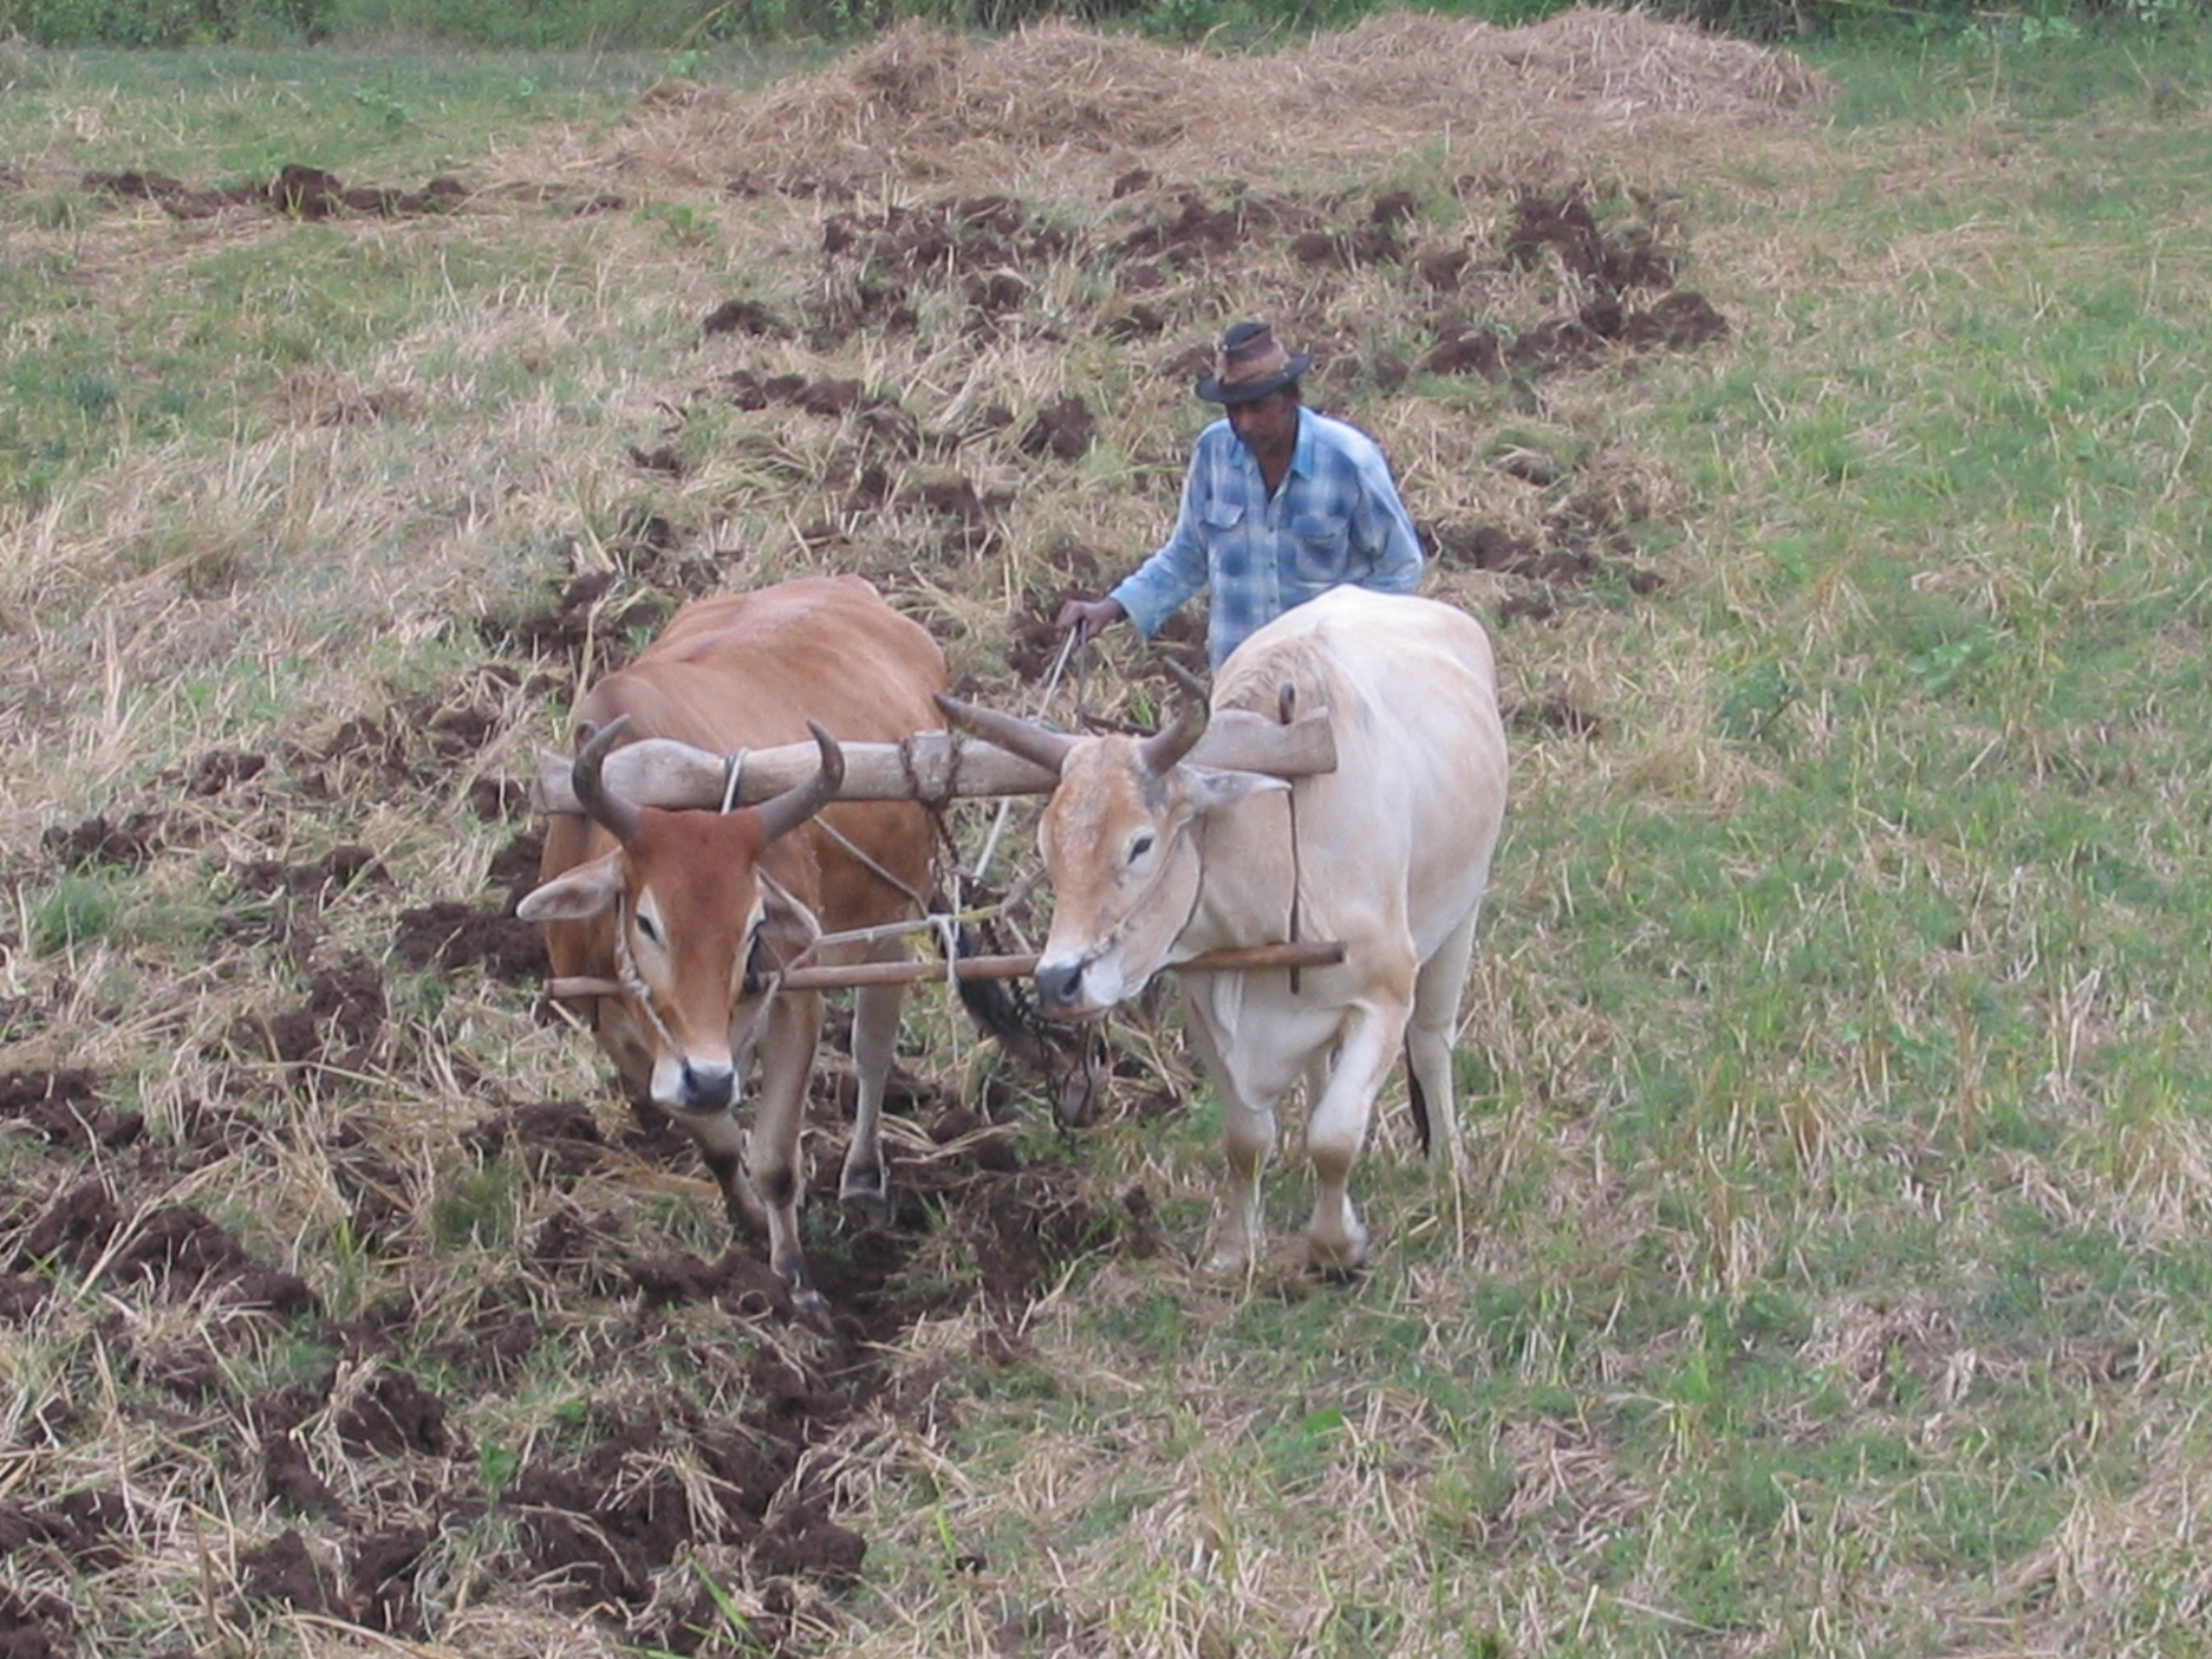 Ploughing a field for sugar cane production in Nadi, Fiji. Photo © Commonwealth of Australia http://www.bom.gov.au/other/copyright.shtml?ftr